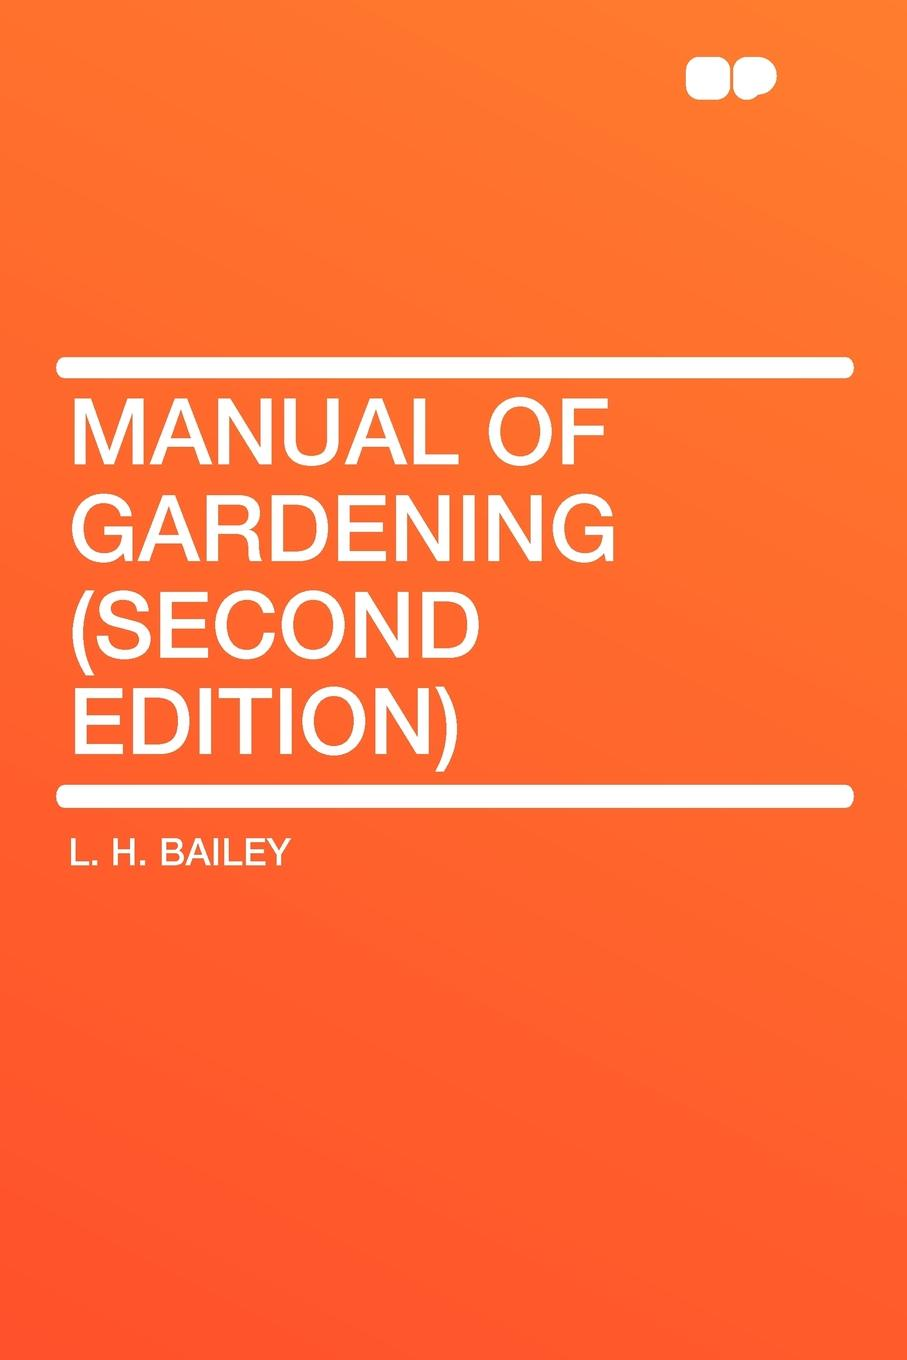 лучшая цена L. H. Bailey Manual of Gardening (Second Edition)